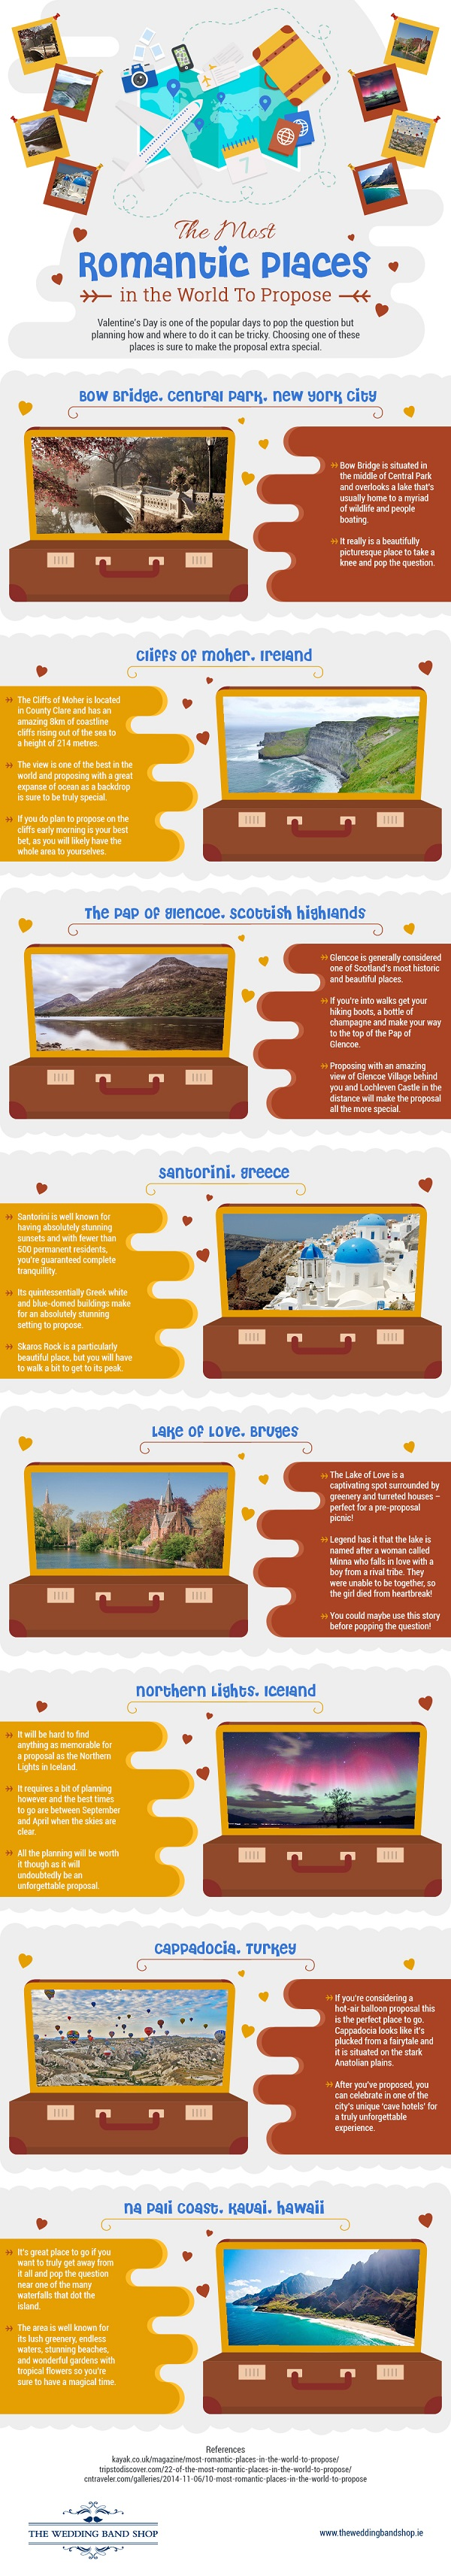 valentine's-day-proposal-locations–Infographic